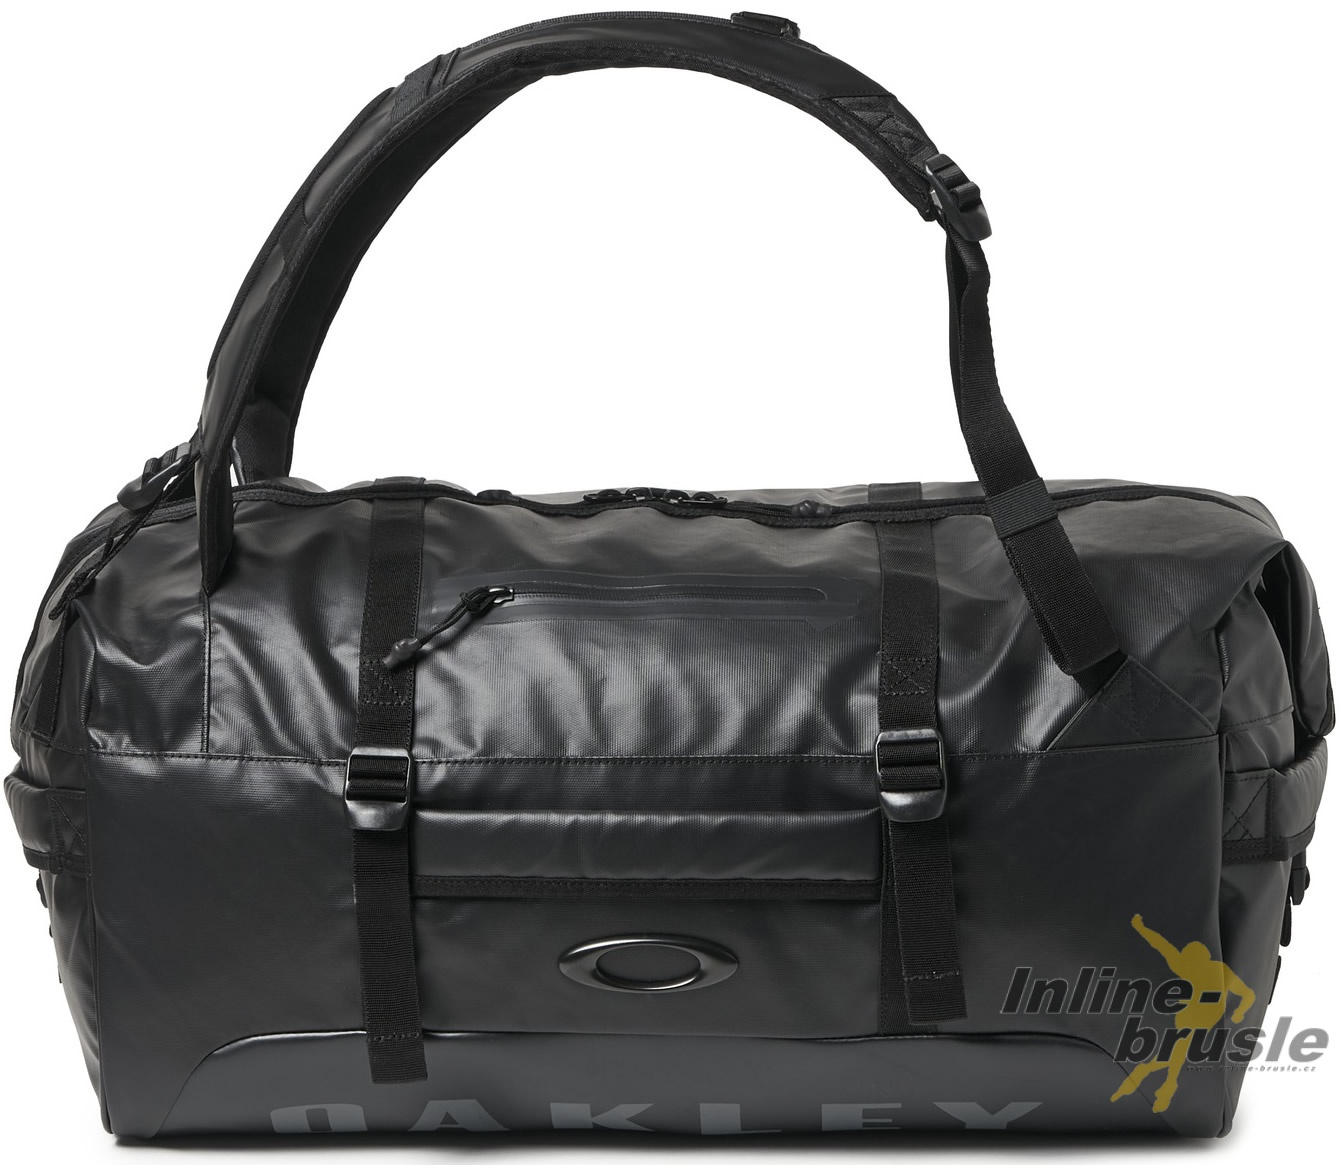 Training Dufle Bag Blackout OS